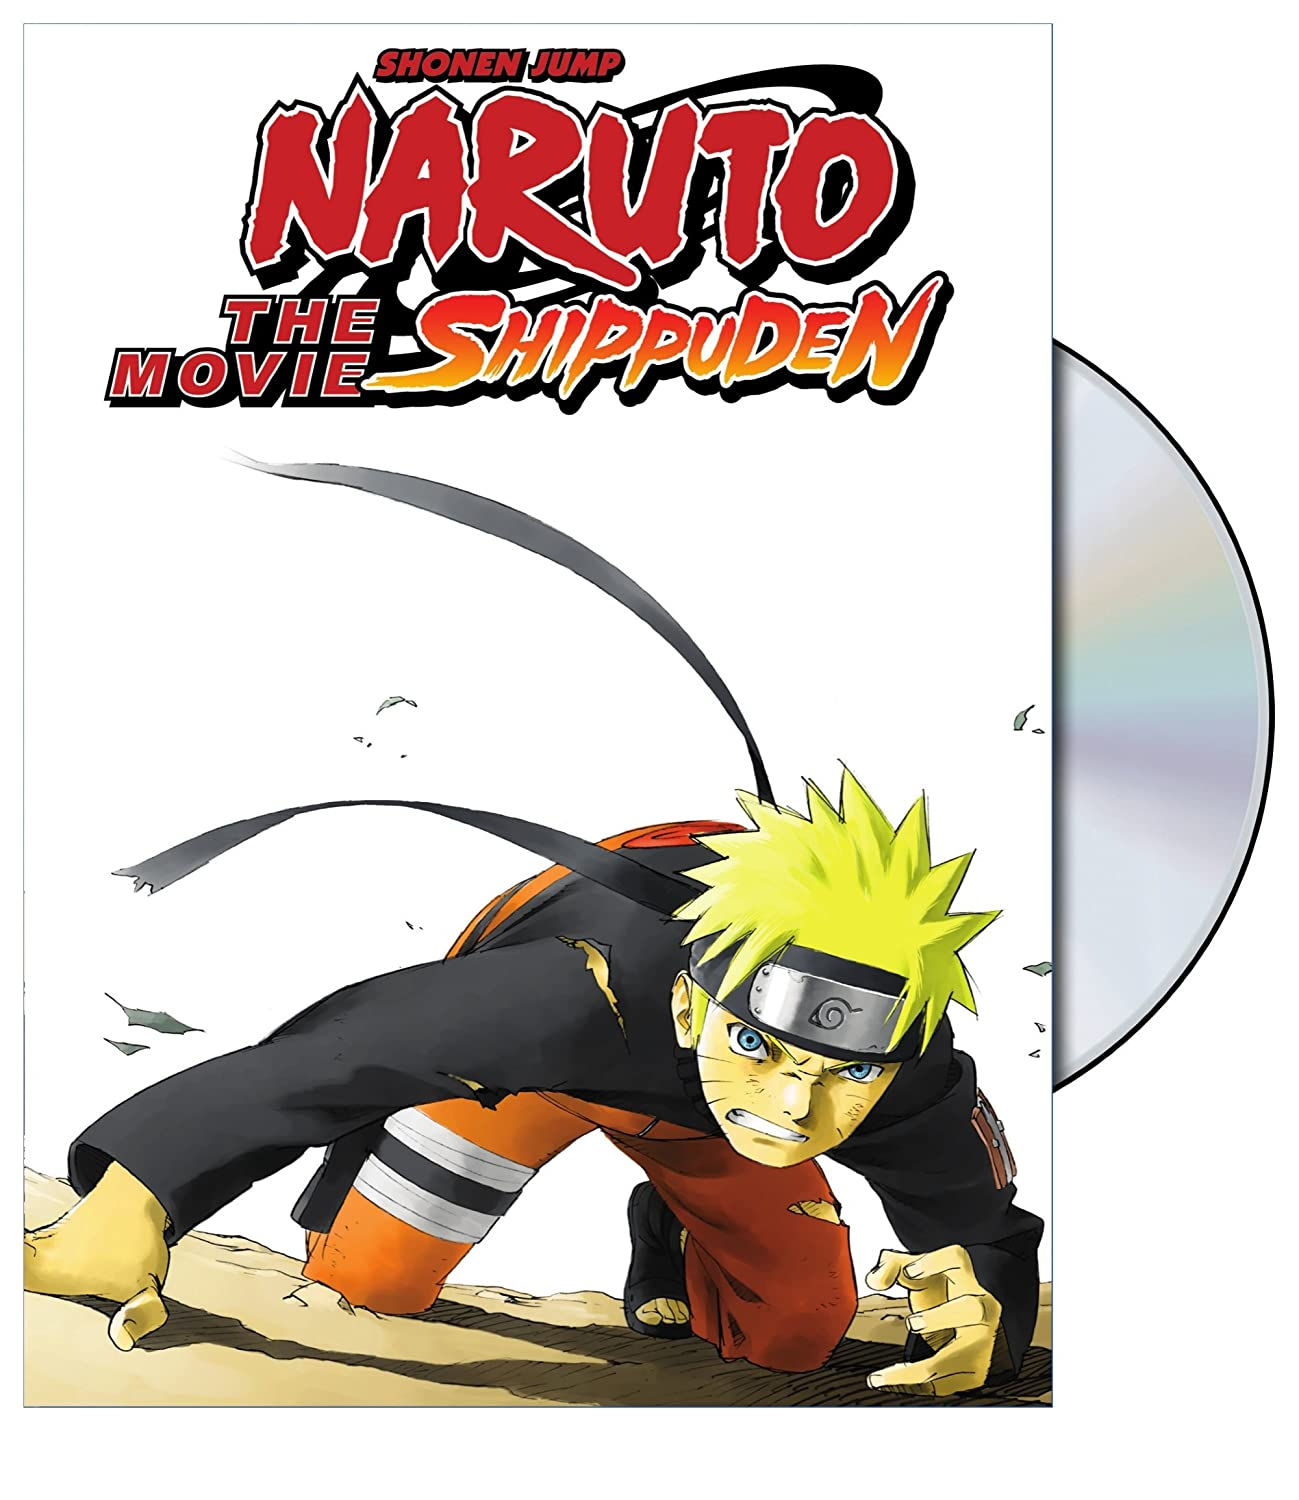 Naruto Shippuden: The Movie Various VIZ Media 26381370 Anime / Japanimation